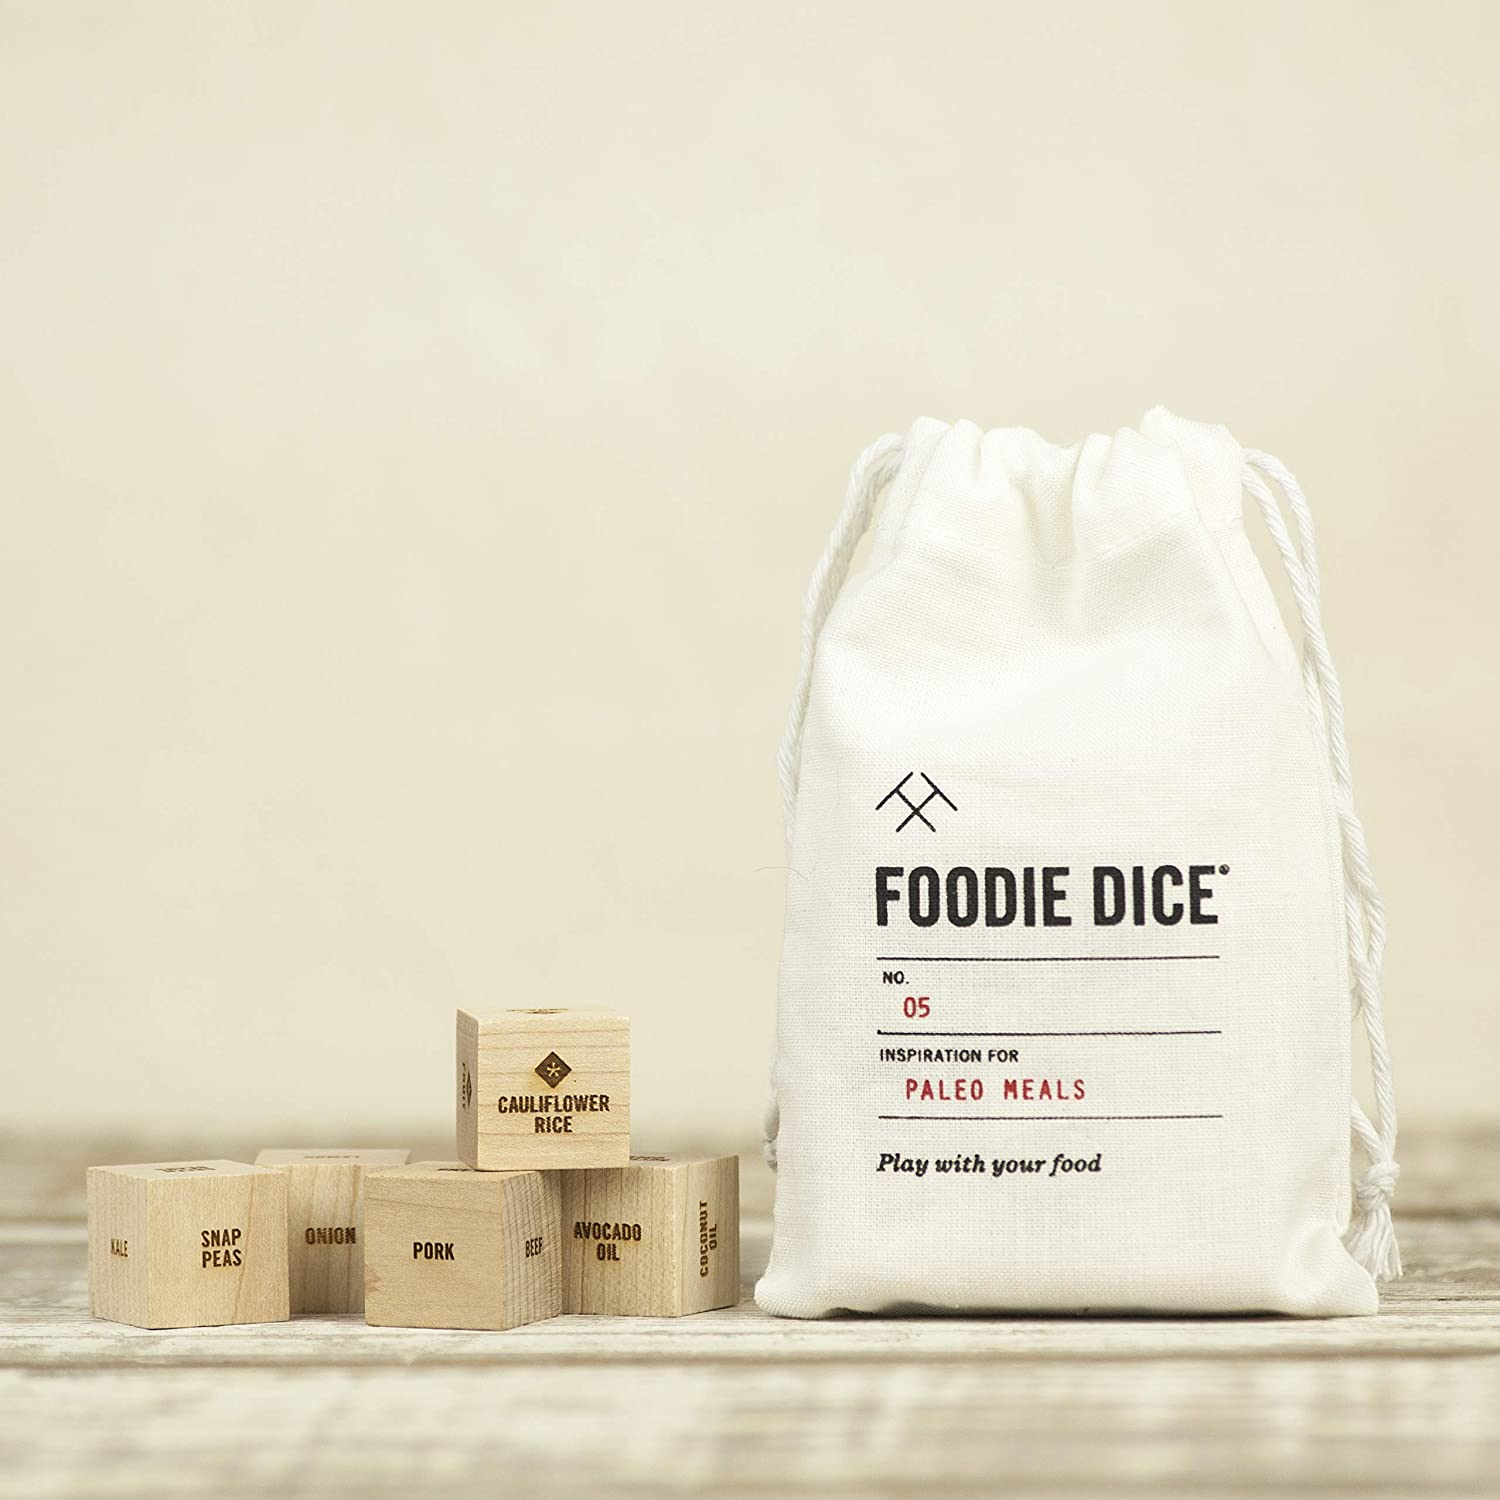 Foodie Dice No. 5 Paleo Meals // Gift for women, foodie, hostess, couples or cooking gift